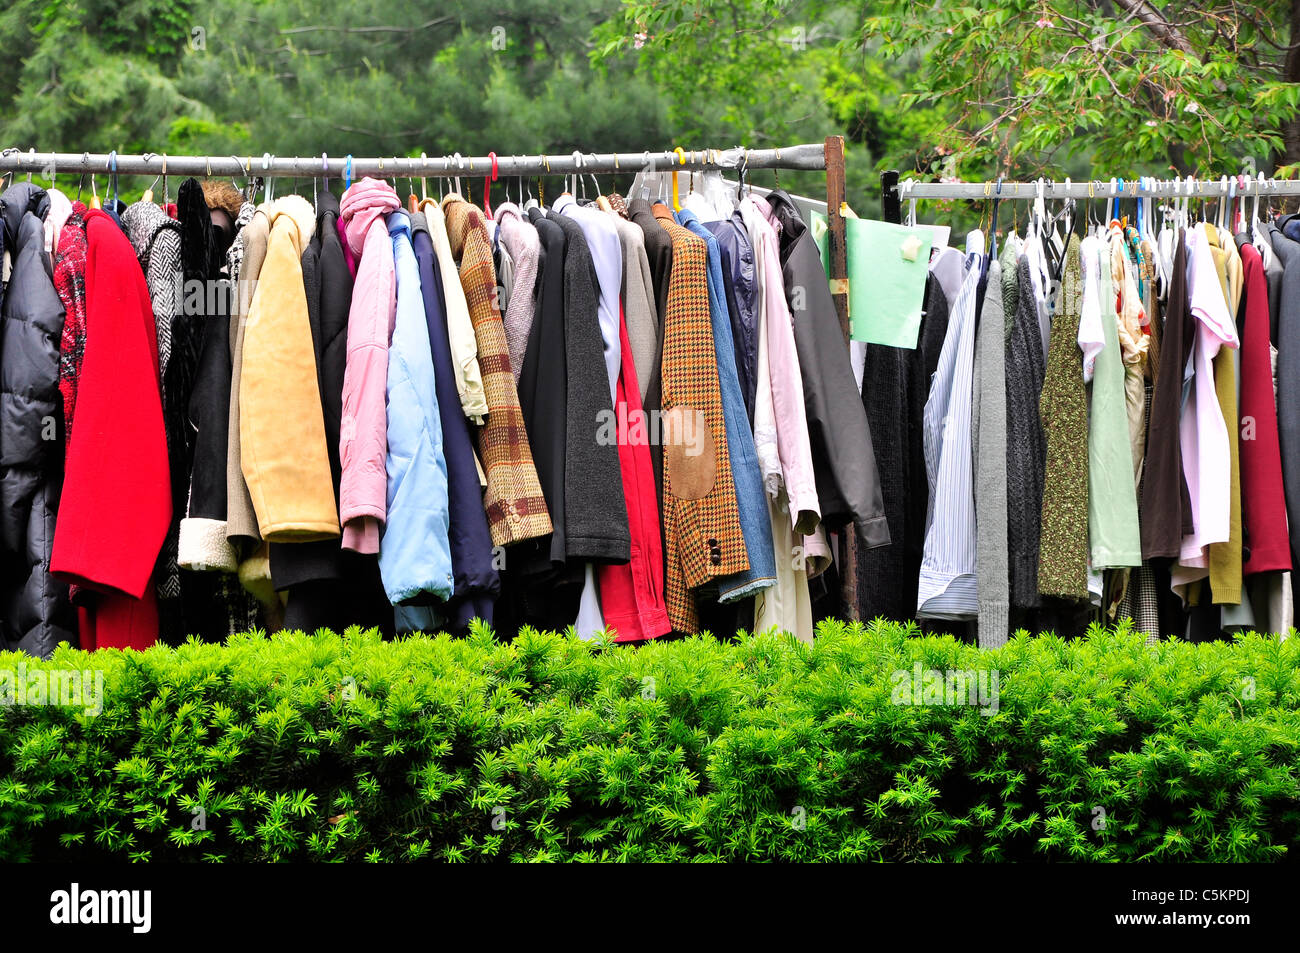 Large number of clothes hanging outside for sale in New York City. - Stock Image